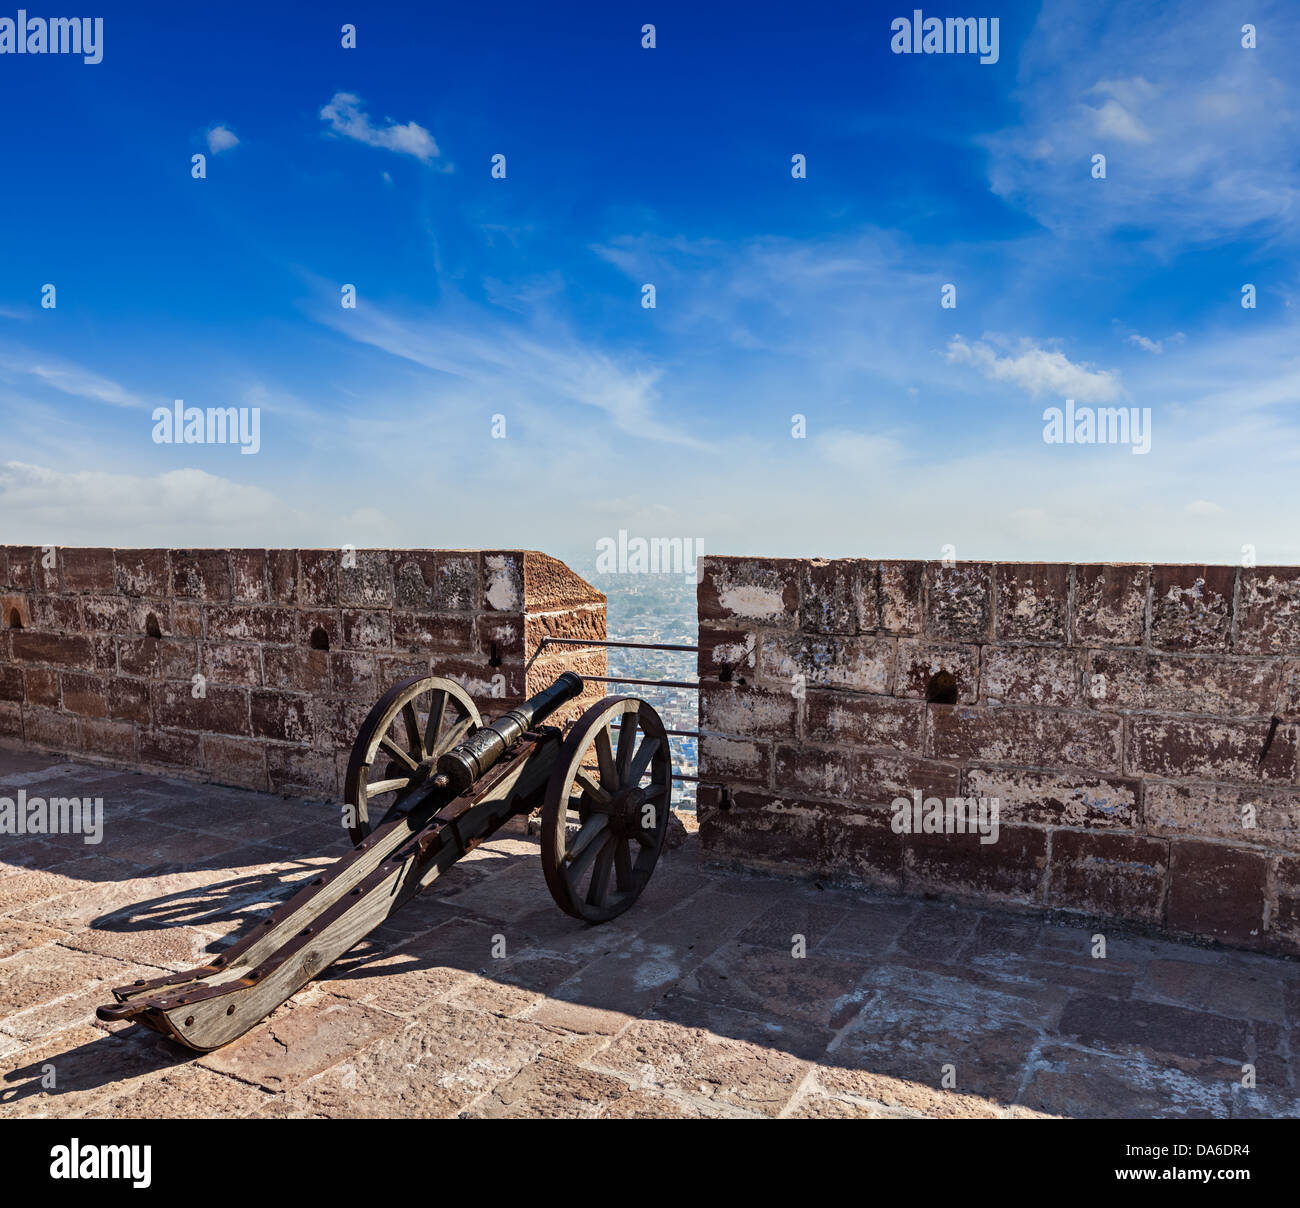 Old cannon in Mehrangarh Fort overlooking city, Jodhpur, Rajasthan, India - Stock Image